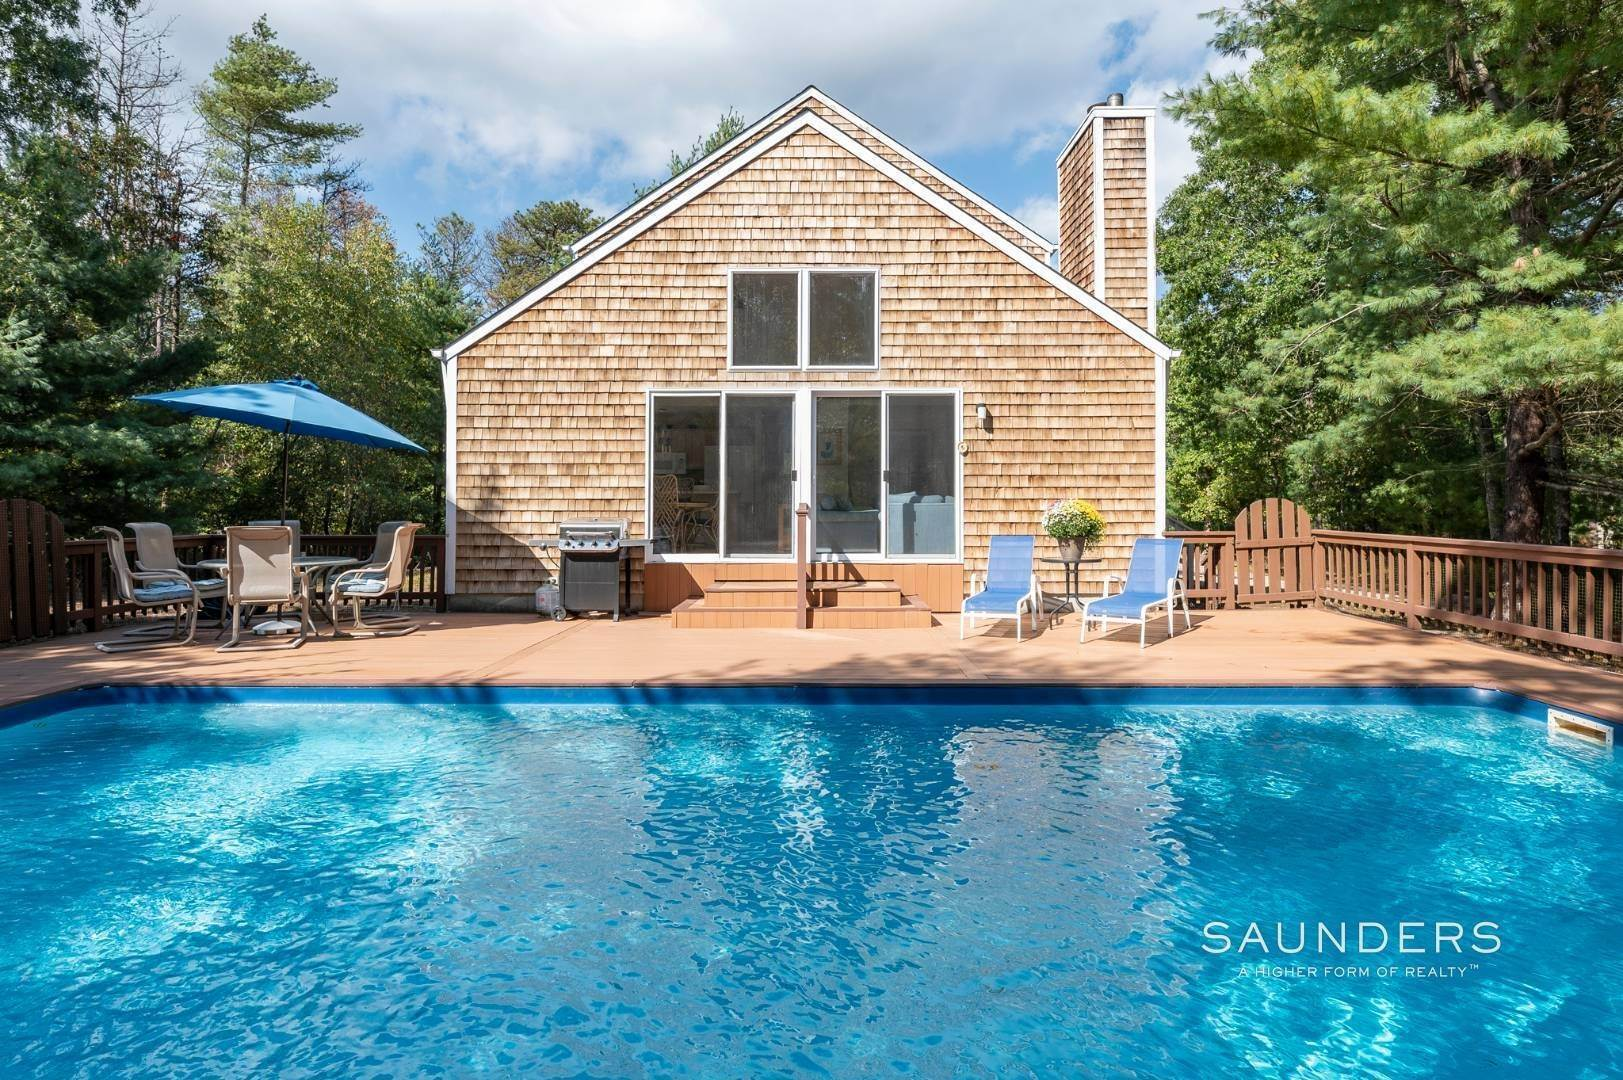 4. Single Family Homes for Sale at Privately Situated On 5 Acres Close To Sag Harbor Village 19 Swamp Road, East Hampton, East Hampton Town, NY 11937